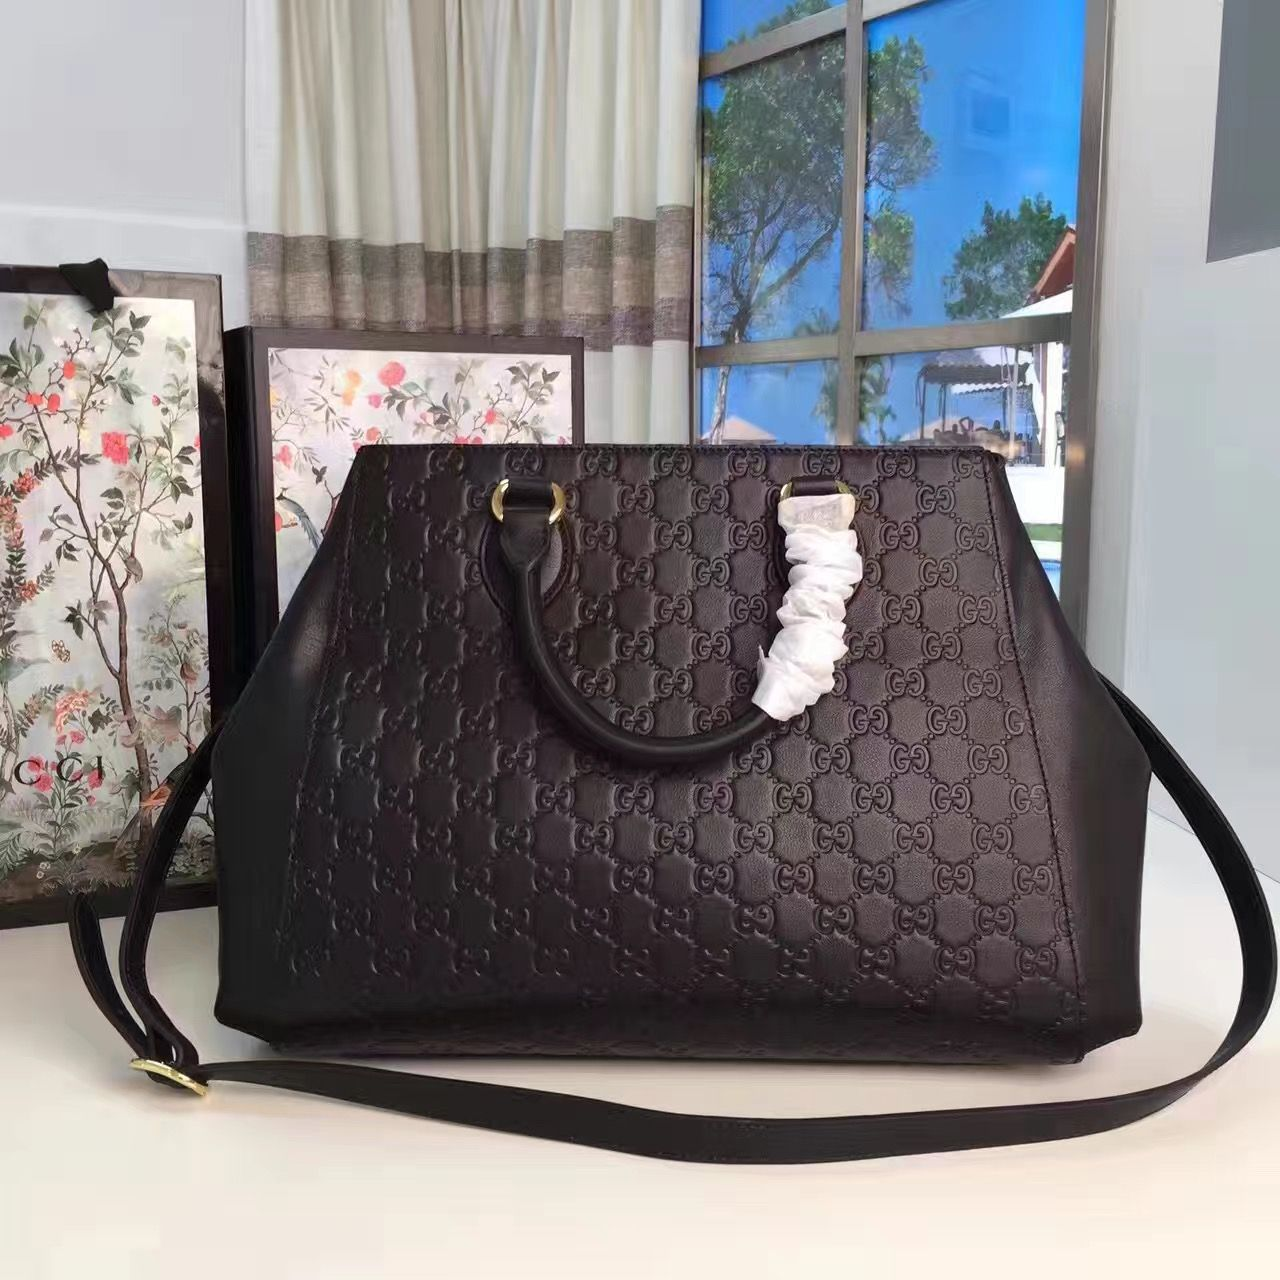 1773a220fcb Gucci Soft Signature Top Handle Large Bag 453704 Black 2017